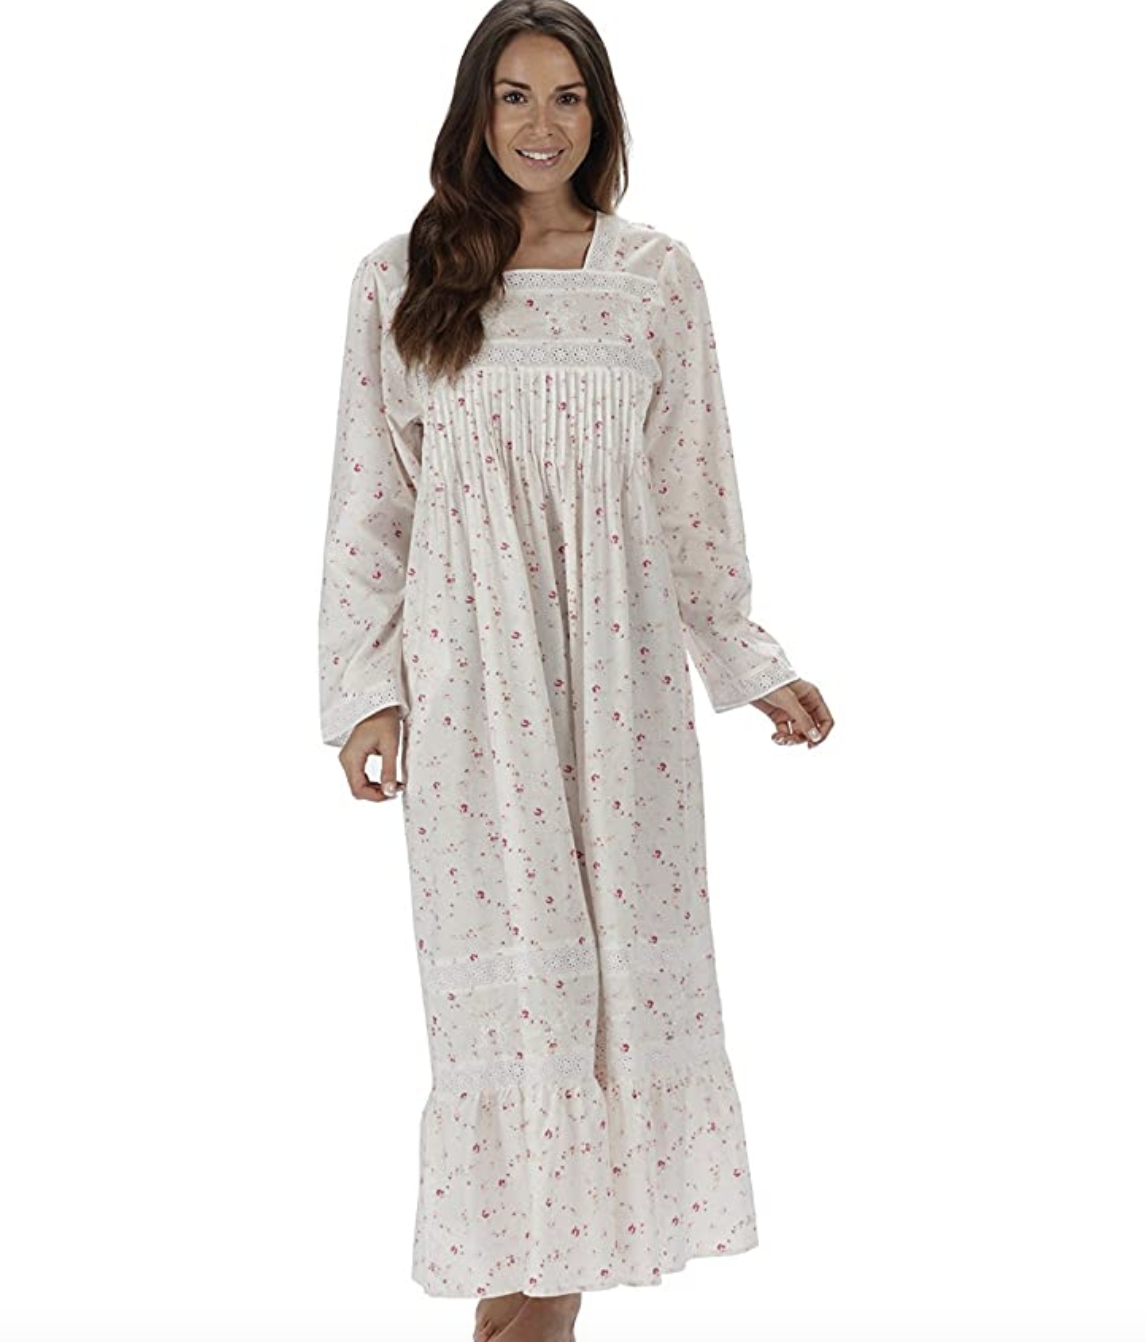 The Summer Nightgown Trend Will Make You Want To Ditch Pants